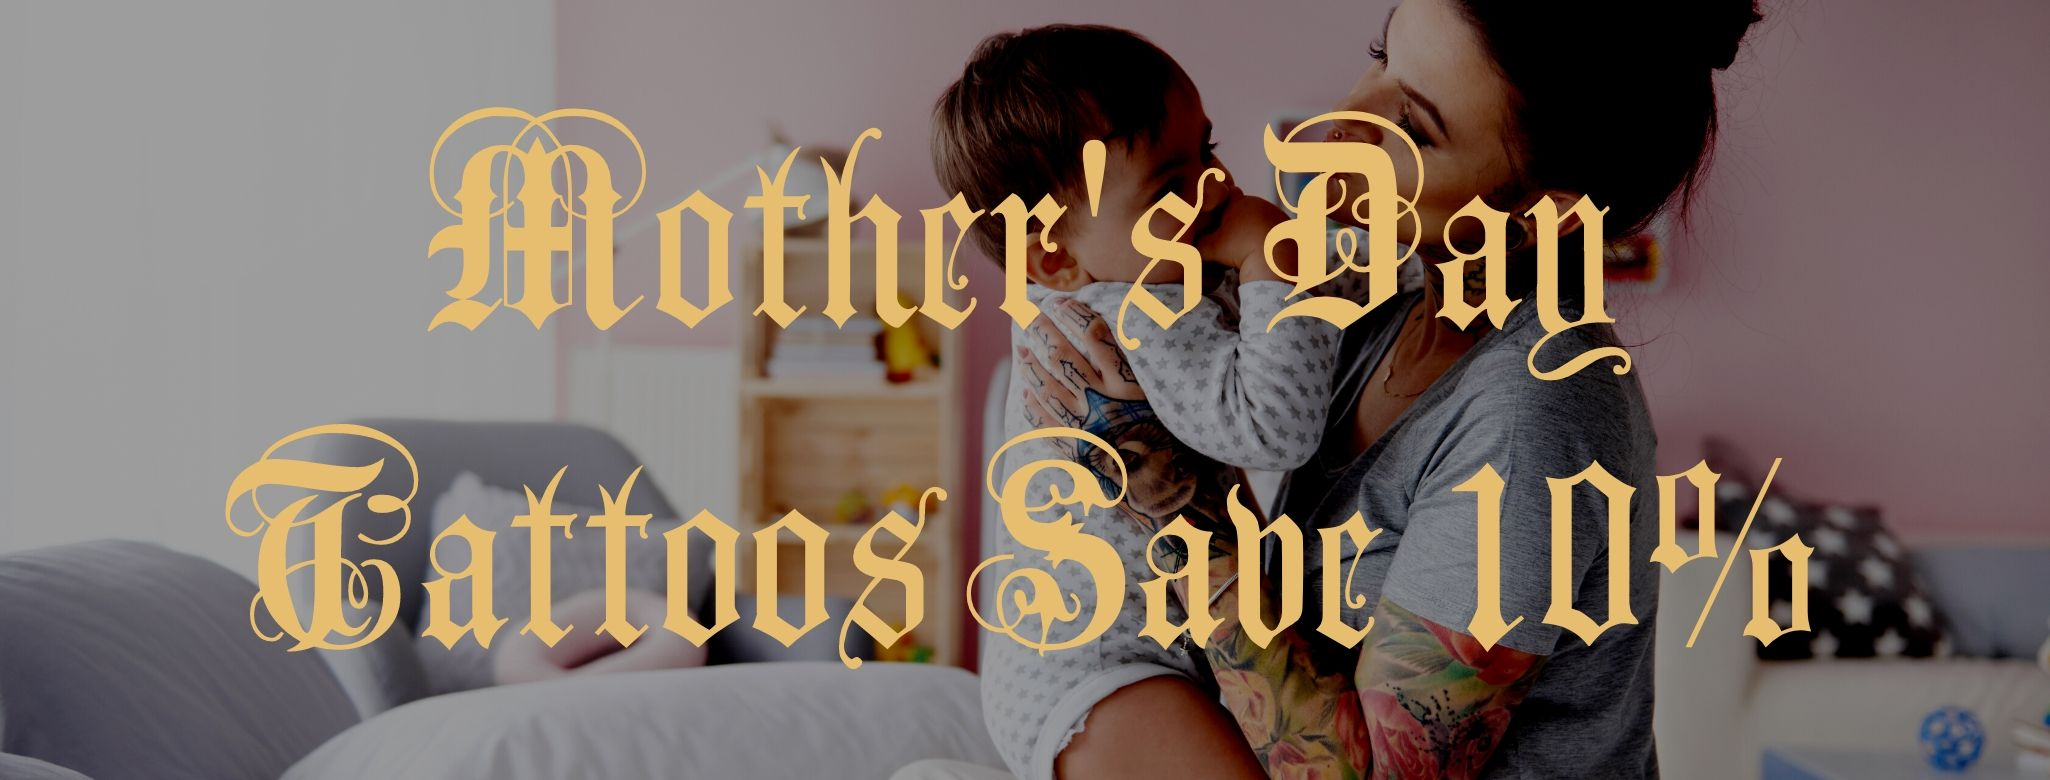 Mothers Day Tattoo Deals